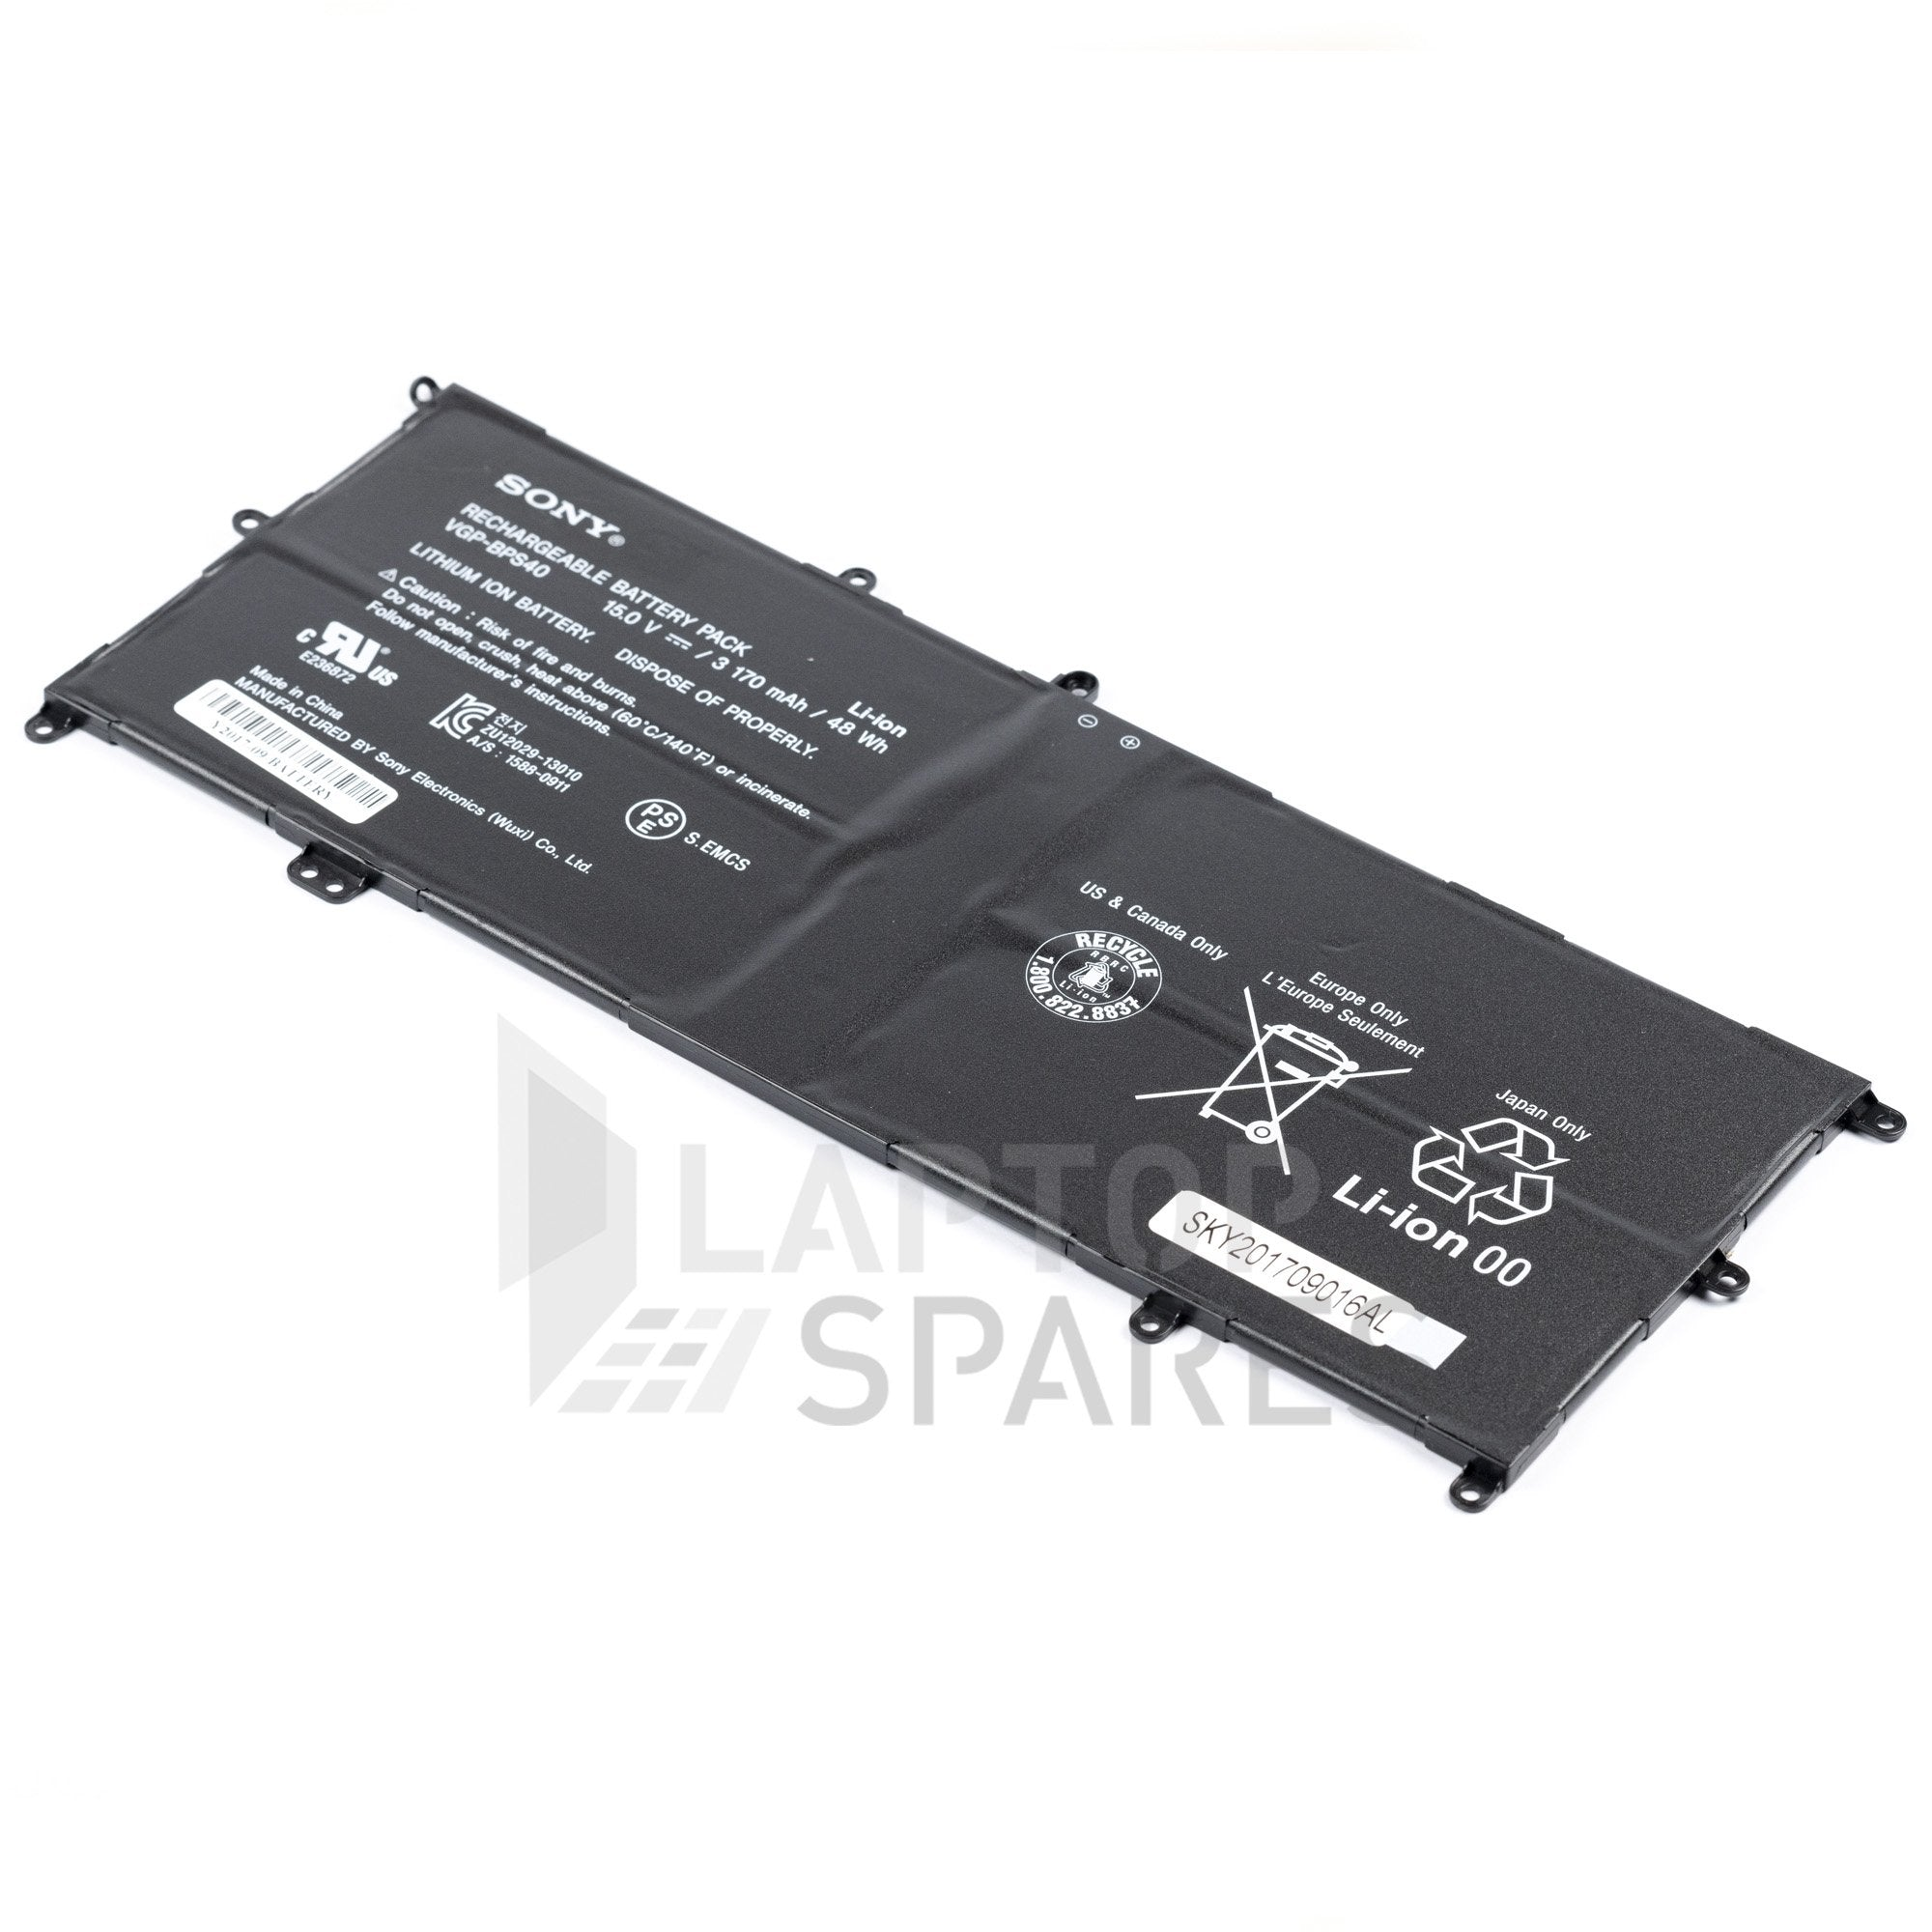 Sony Vaio SVF15 N18PXB 3170mAh Battery